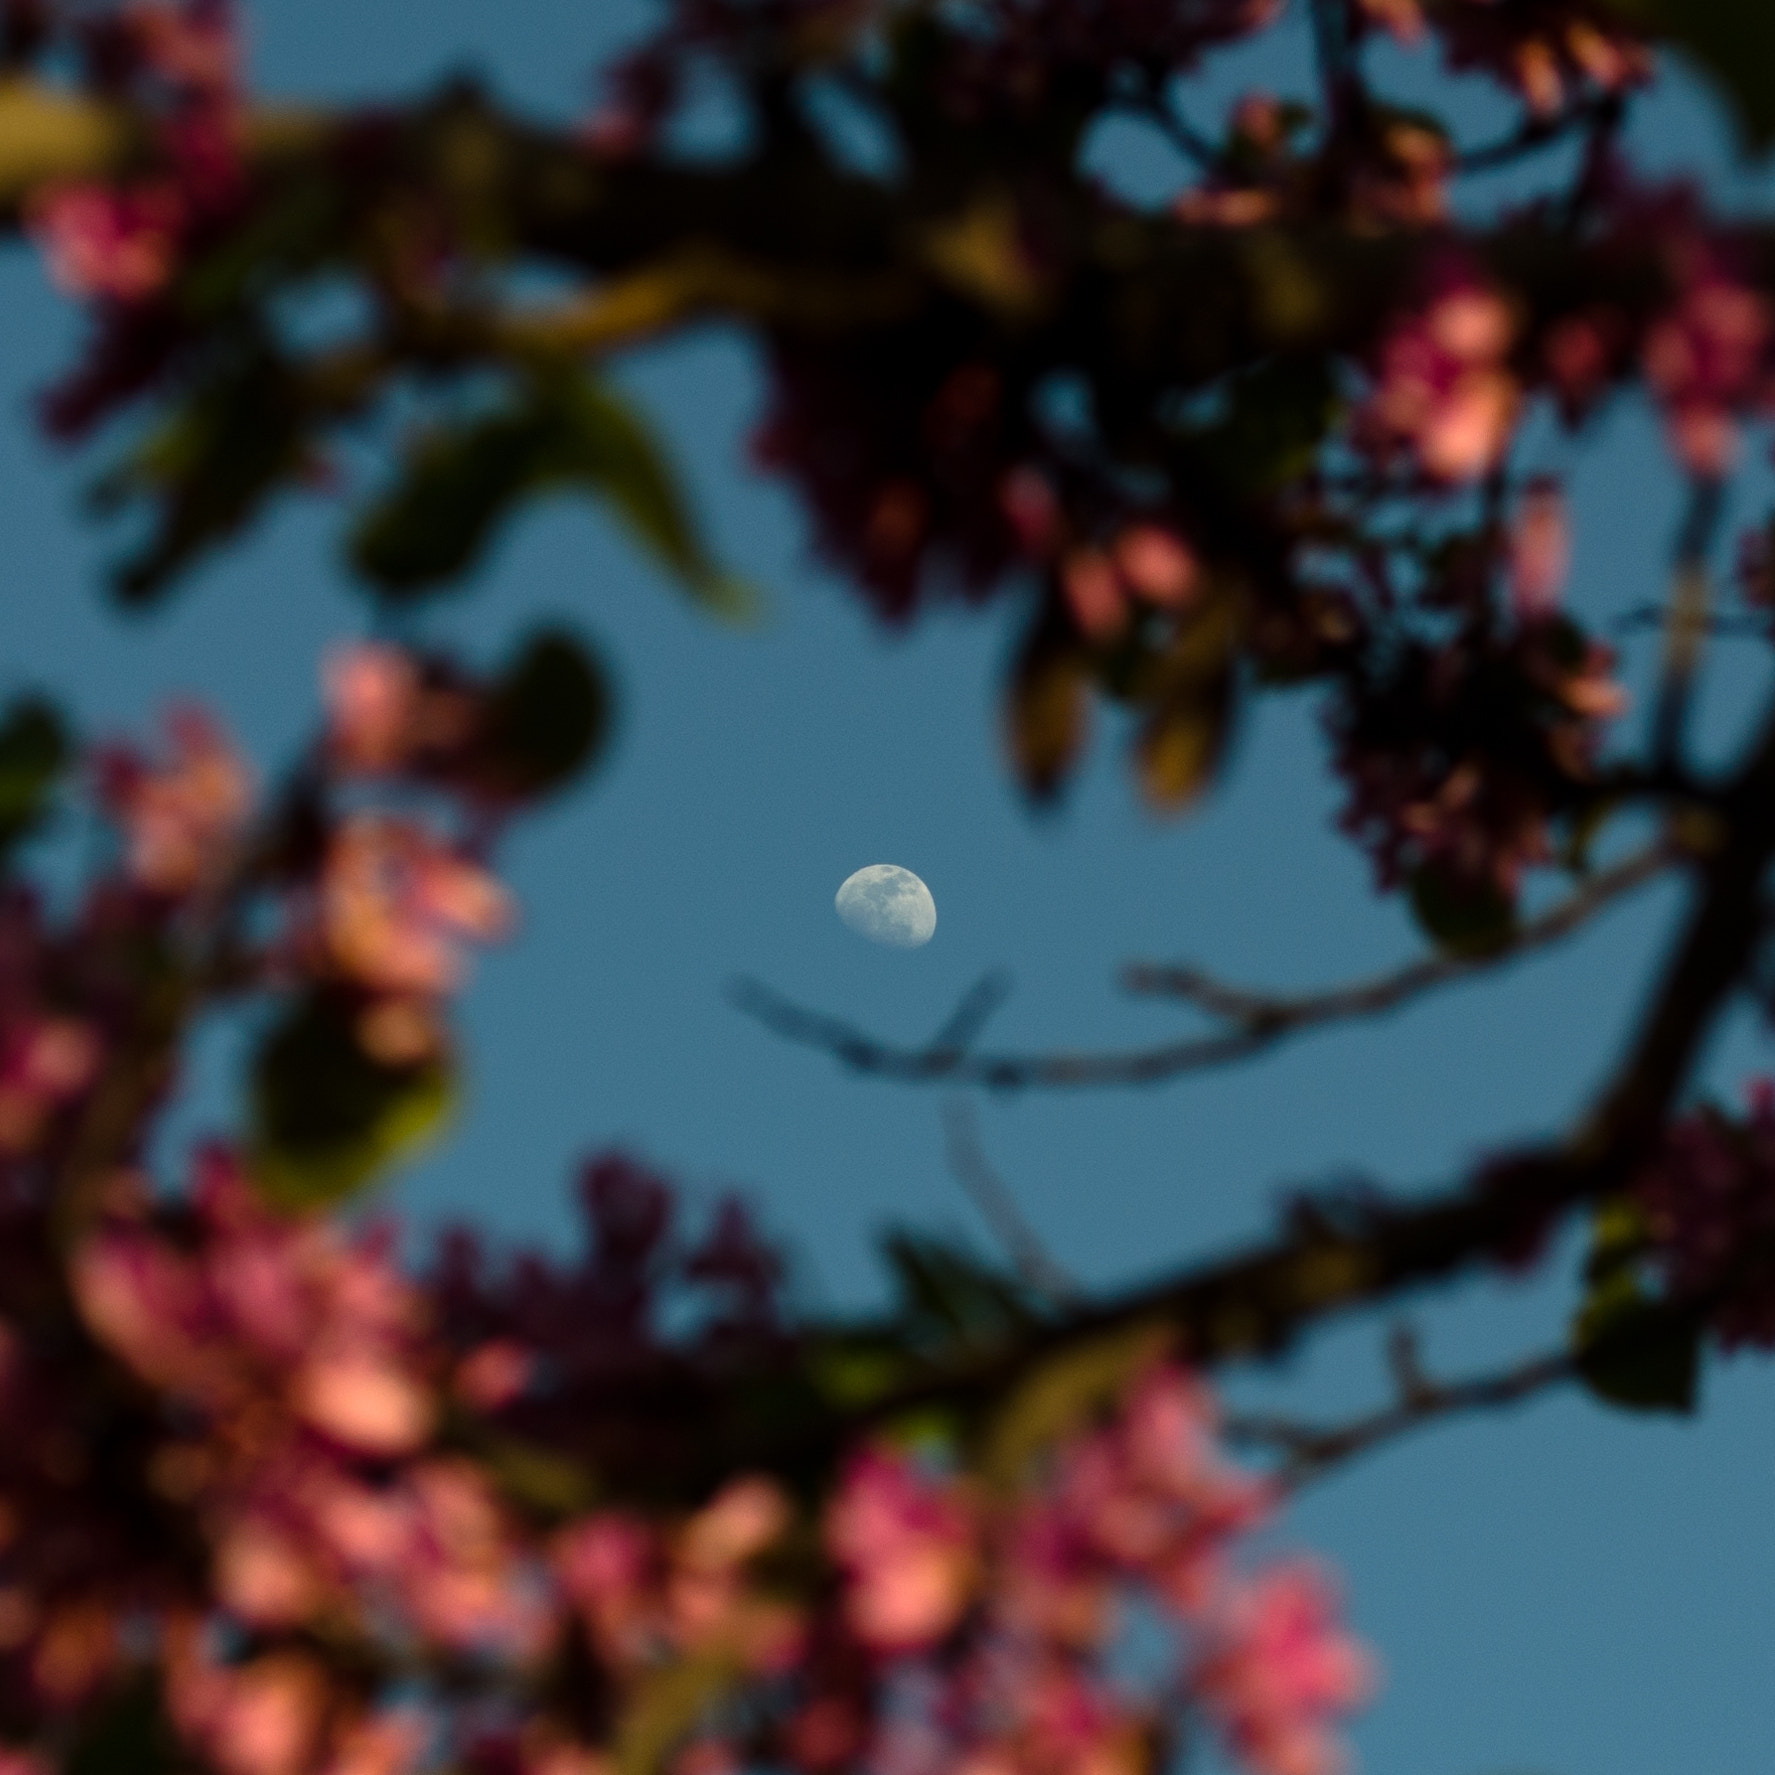 Photograph Moon during the spring day by Denys Tsutsayev (Lisovyk) on 500px